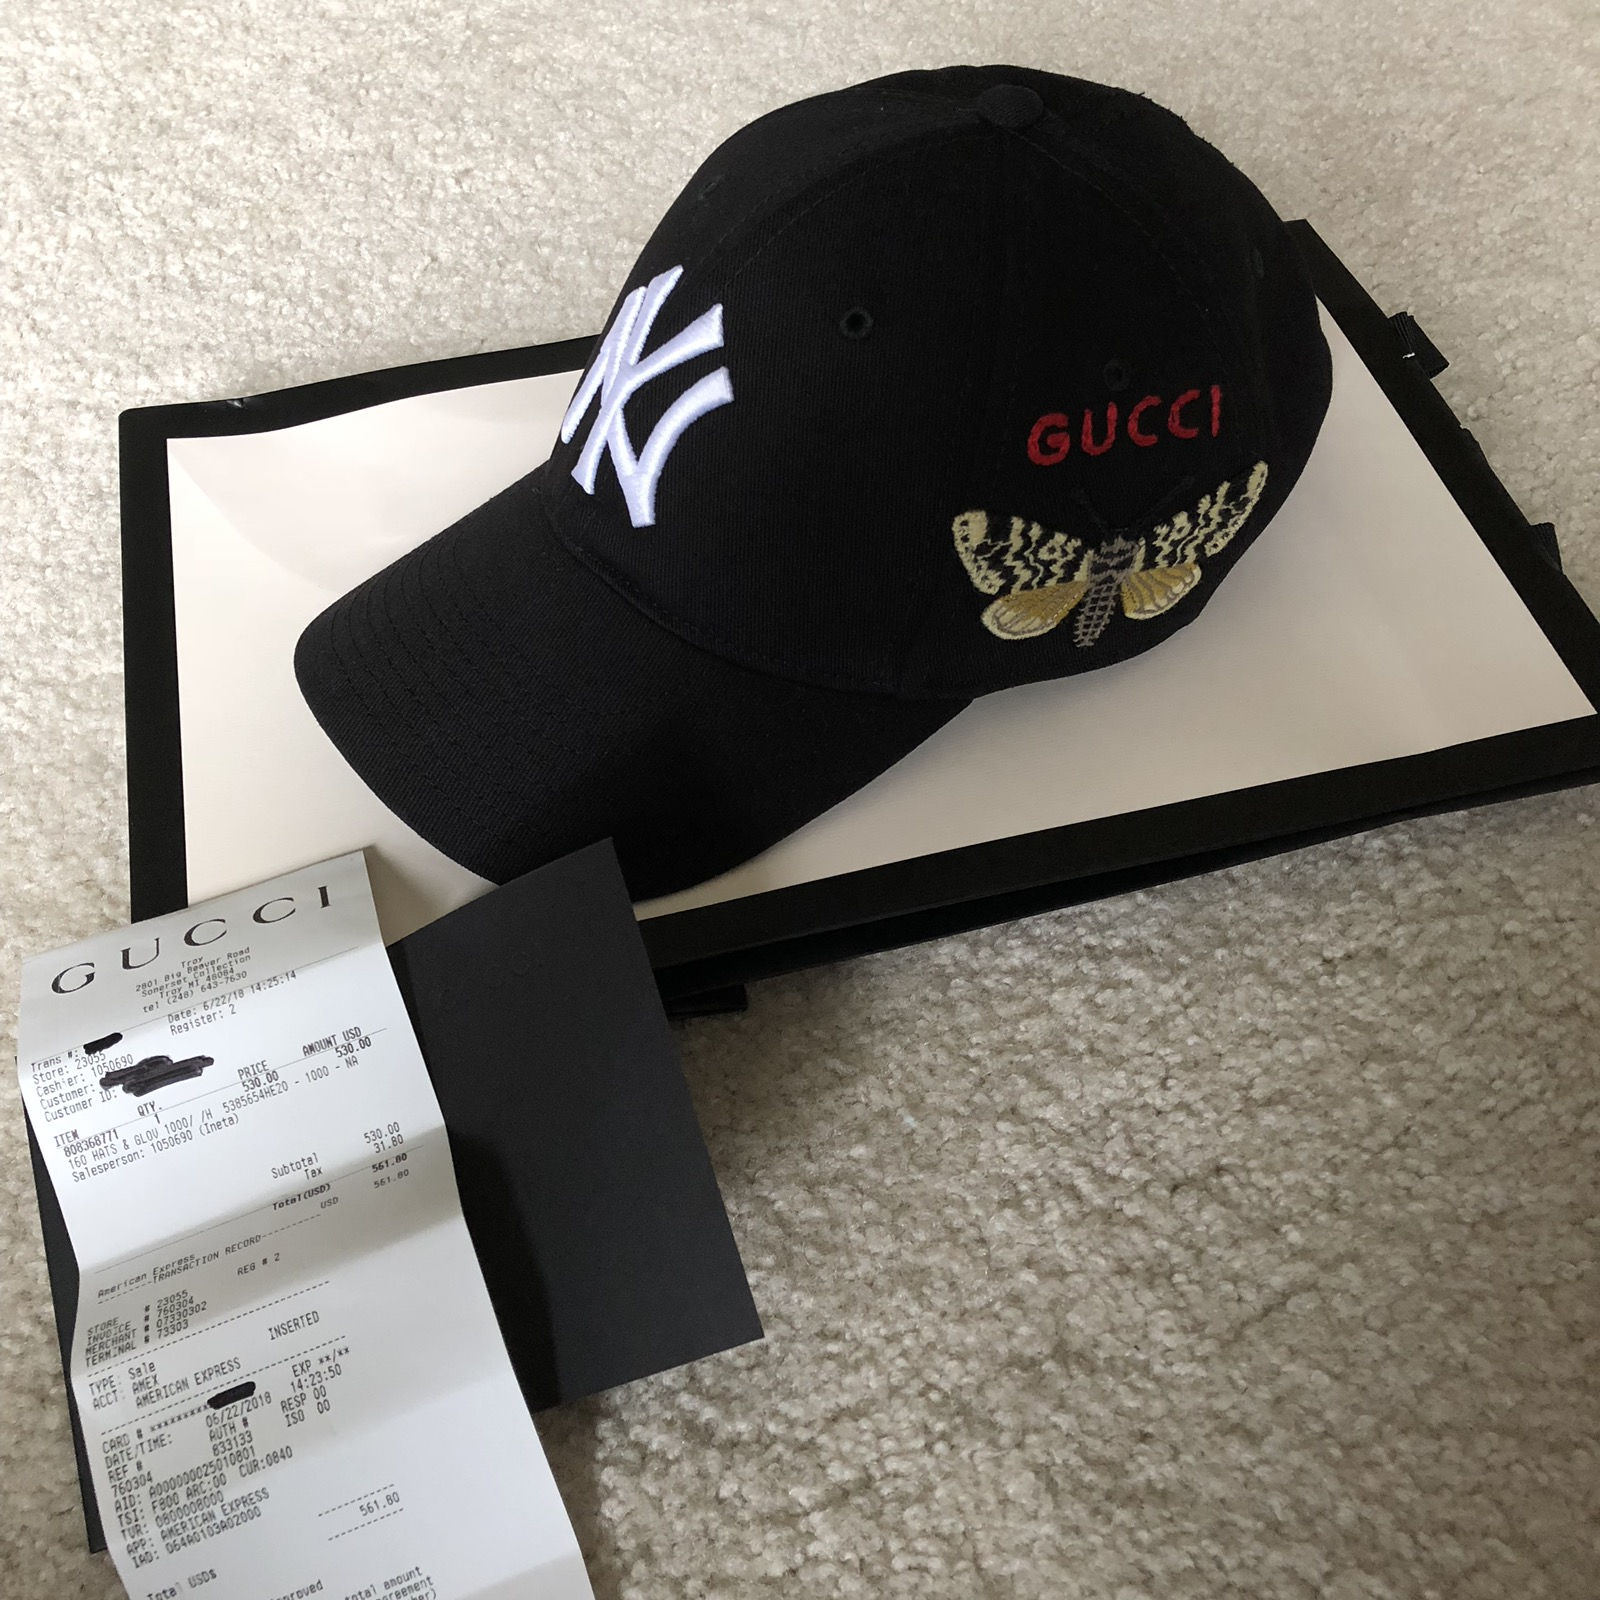 Gucci Gucci New York Yankees NY Baseball Cap   Hat Black Mint Sold Out Size  one size - Hats for Sale - Grailed 7c1a87c0497